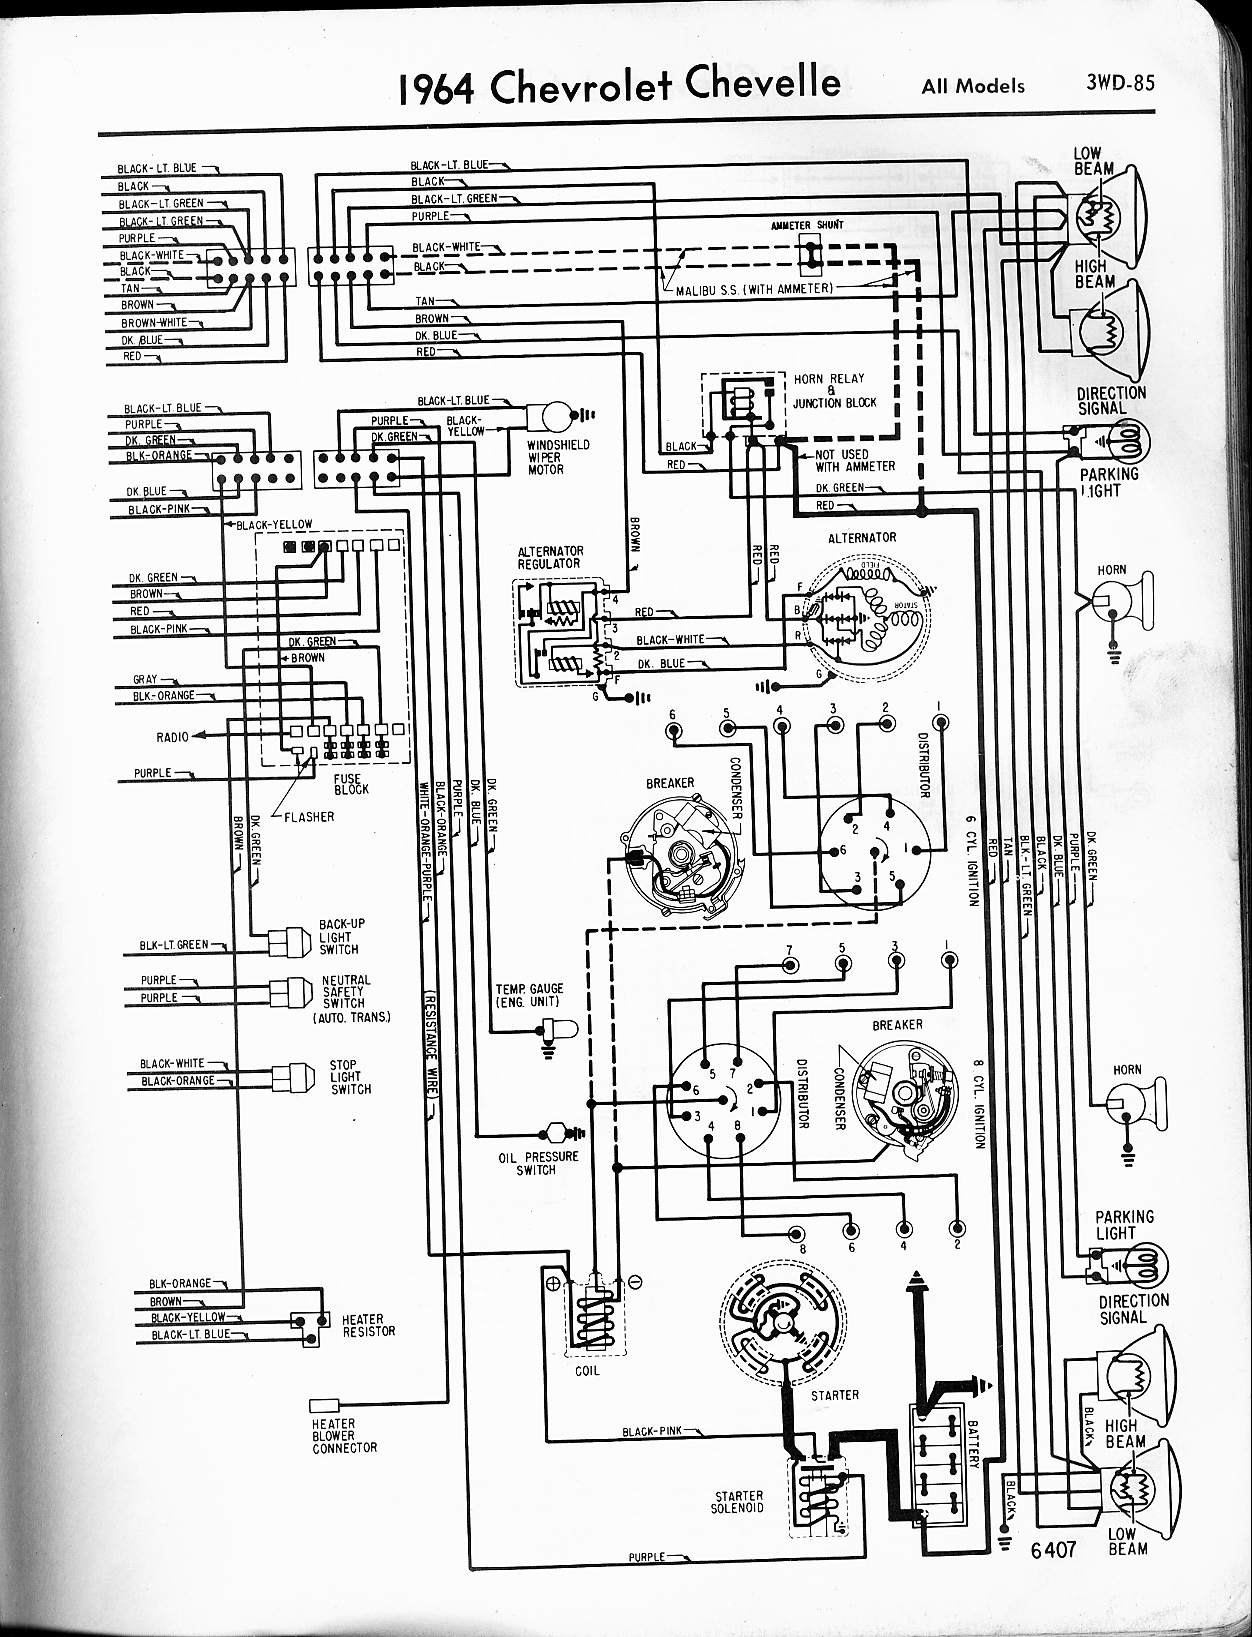 hight resolution of 65 corvette wiring diagram wiring diagram1999 chevrolet wiring diagram wiring diagram1999 chevrolet corvette system wiring diagrams